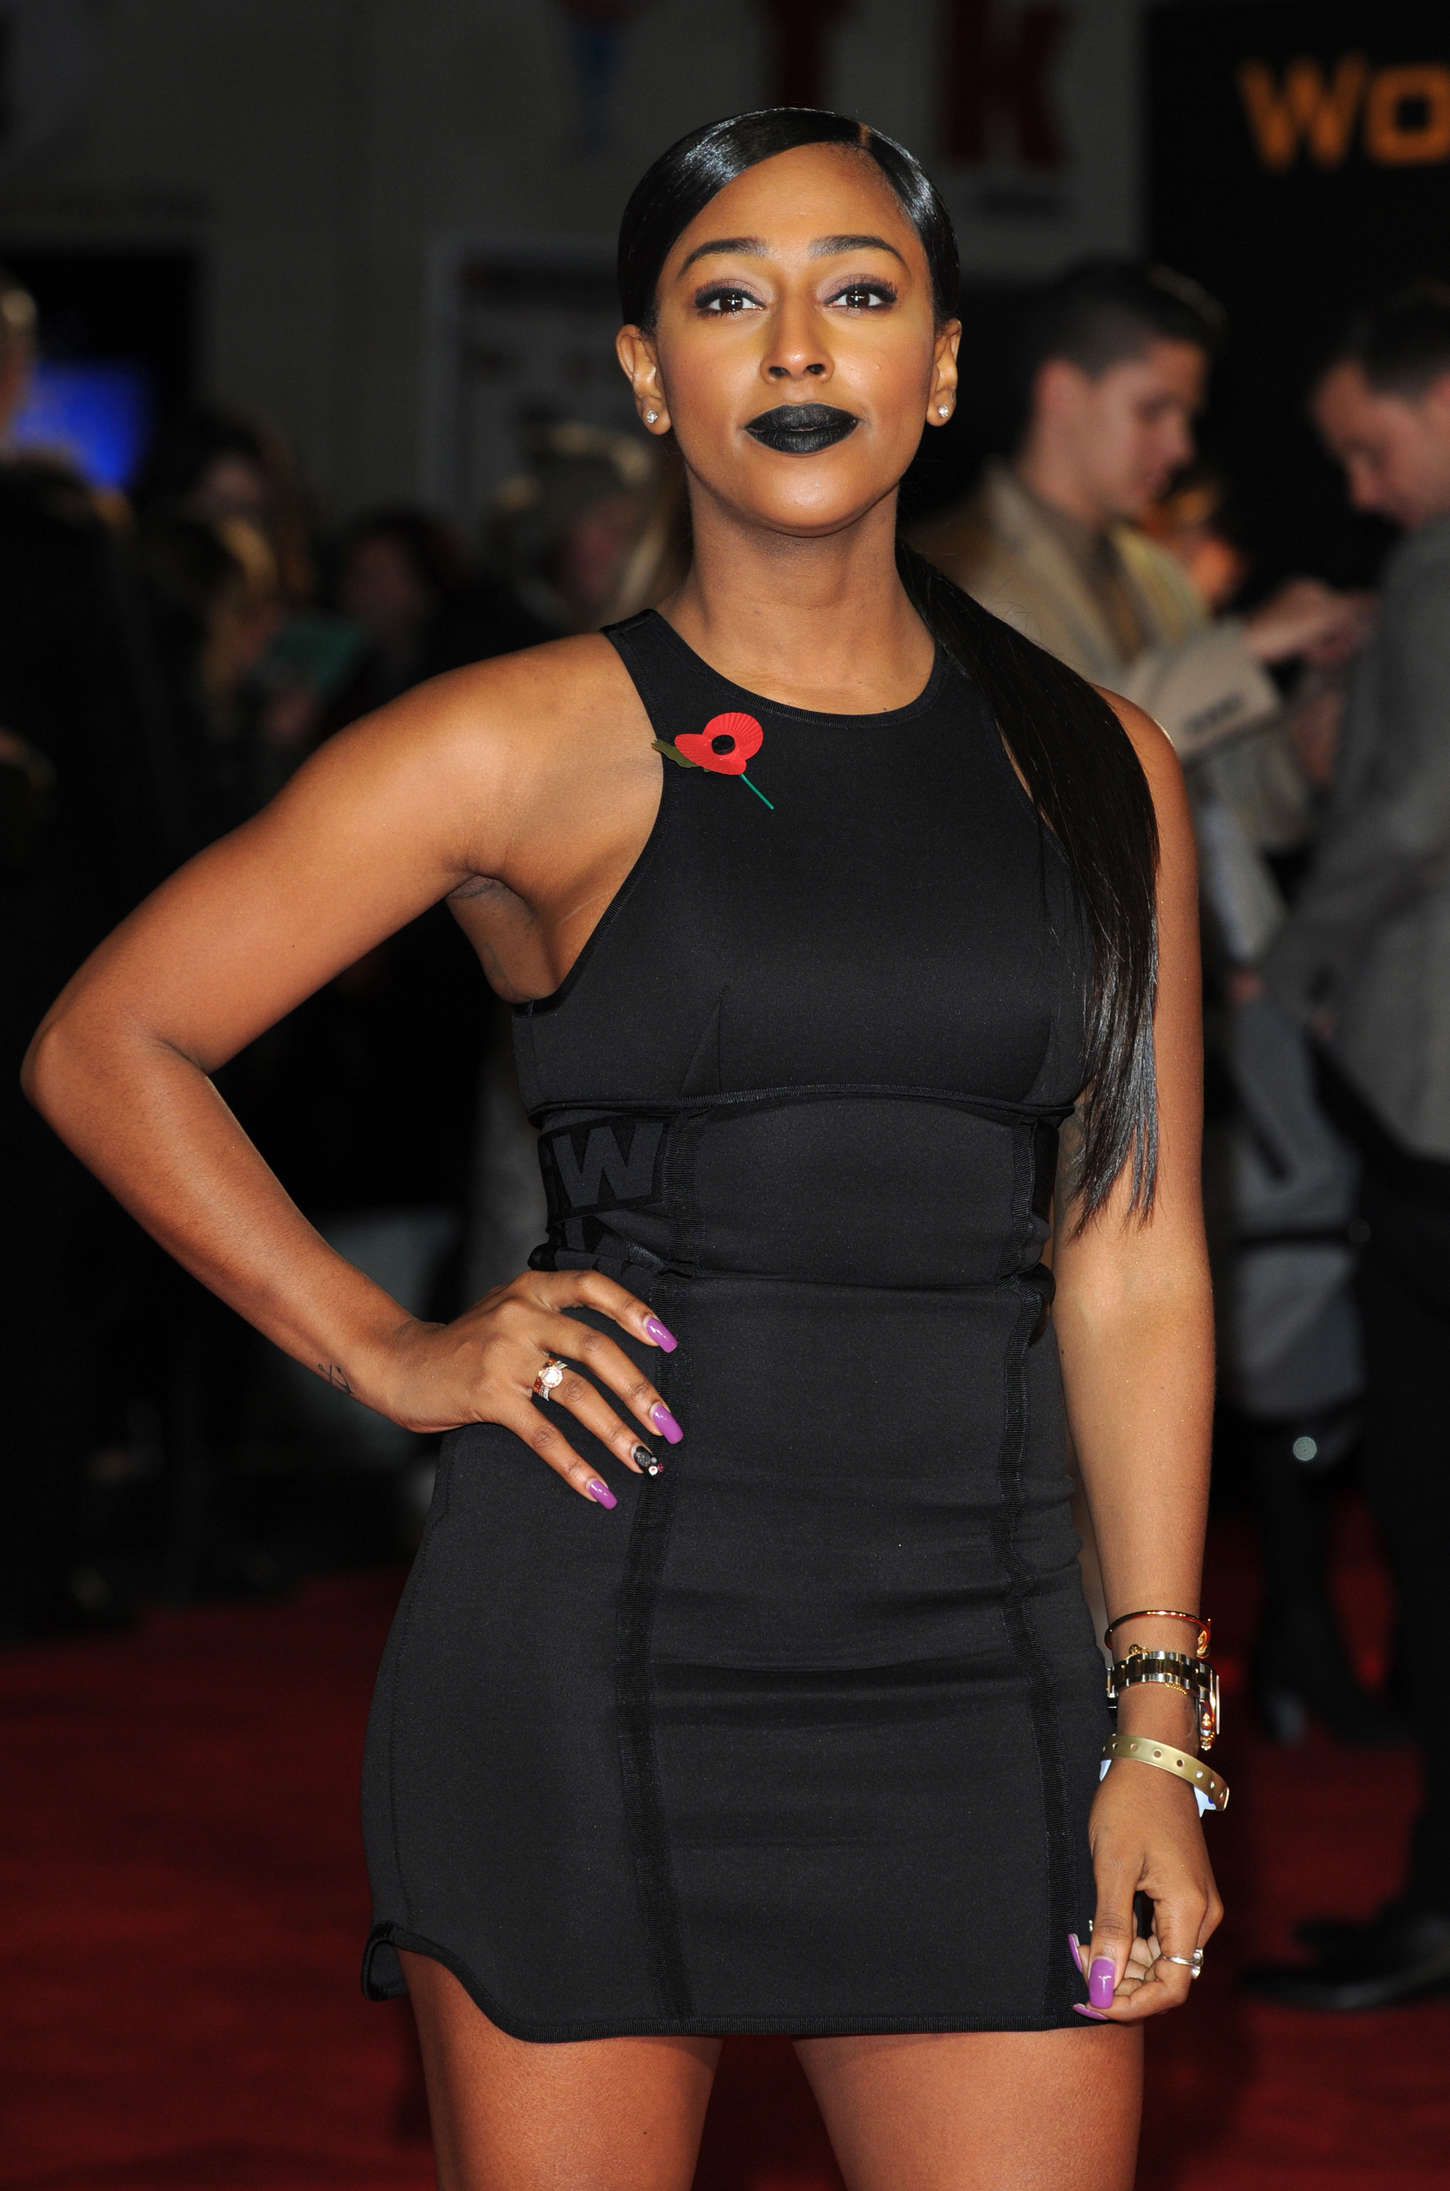 Alexandra Burke At Premiere Of The Hunger Games Mockingjay Part 1 In London Gotceleb